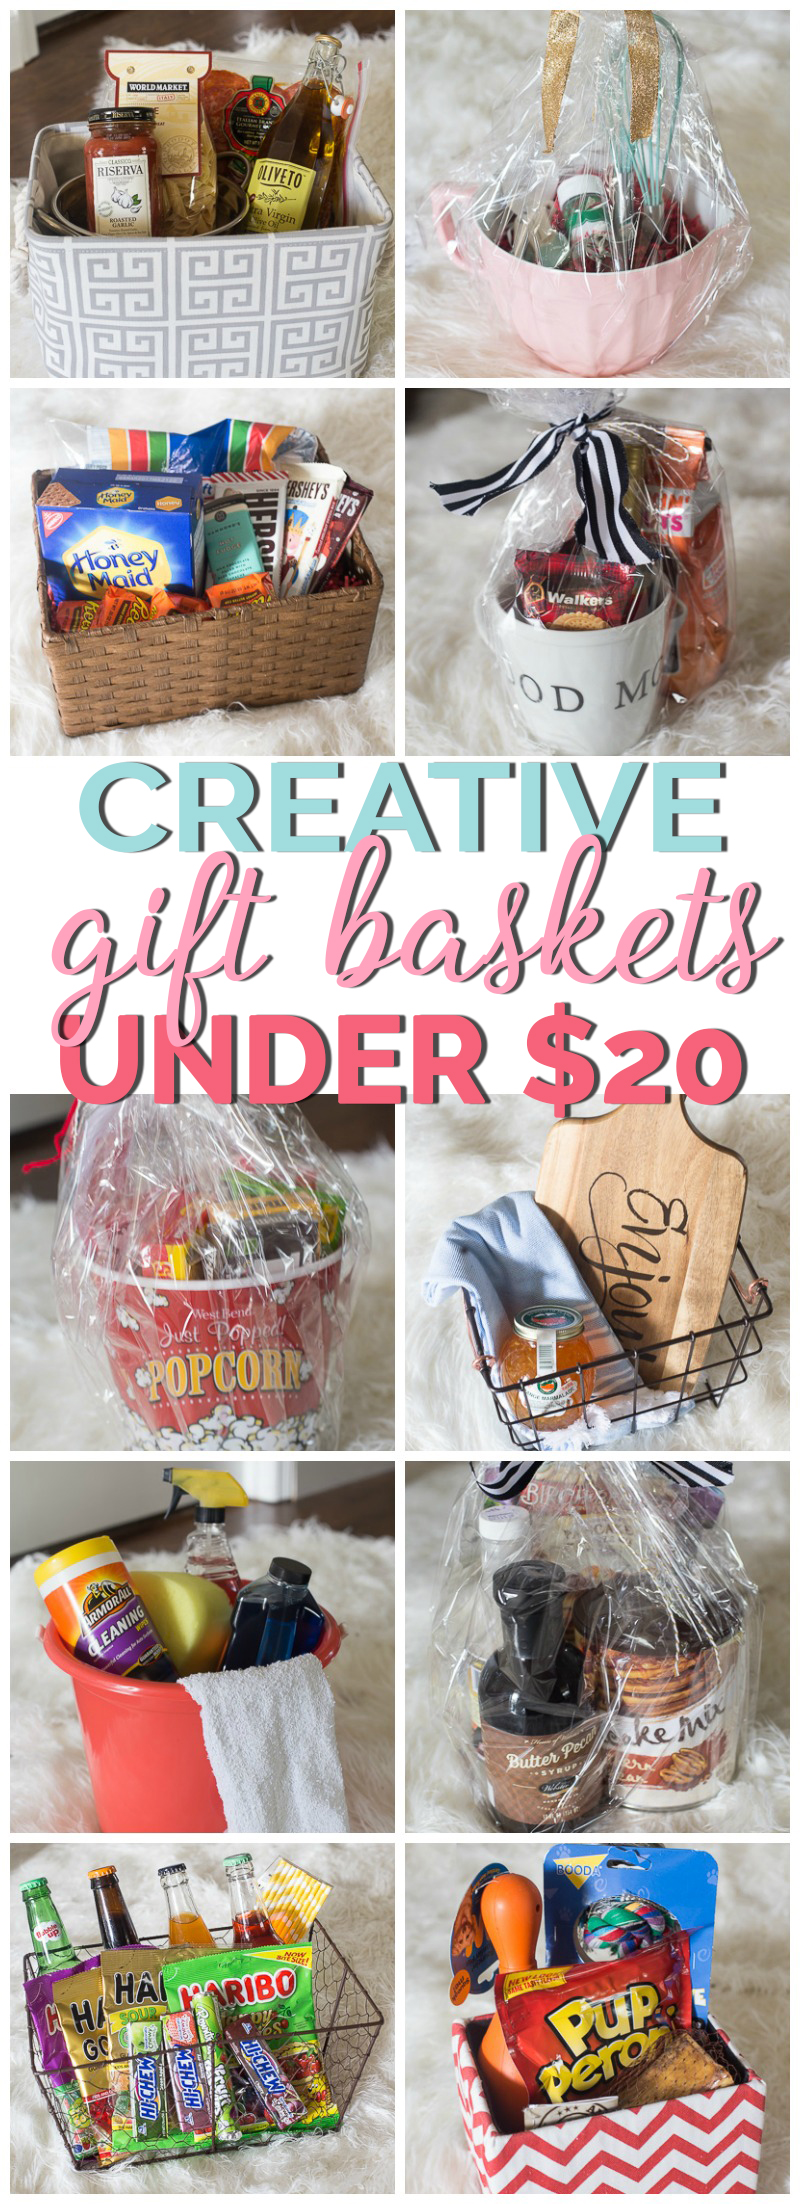 Luxurious Friends Graduation Gift Ideas Gift Basket Ideas Under 20 Gift Ideas ideas Creative Gift Ideas